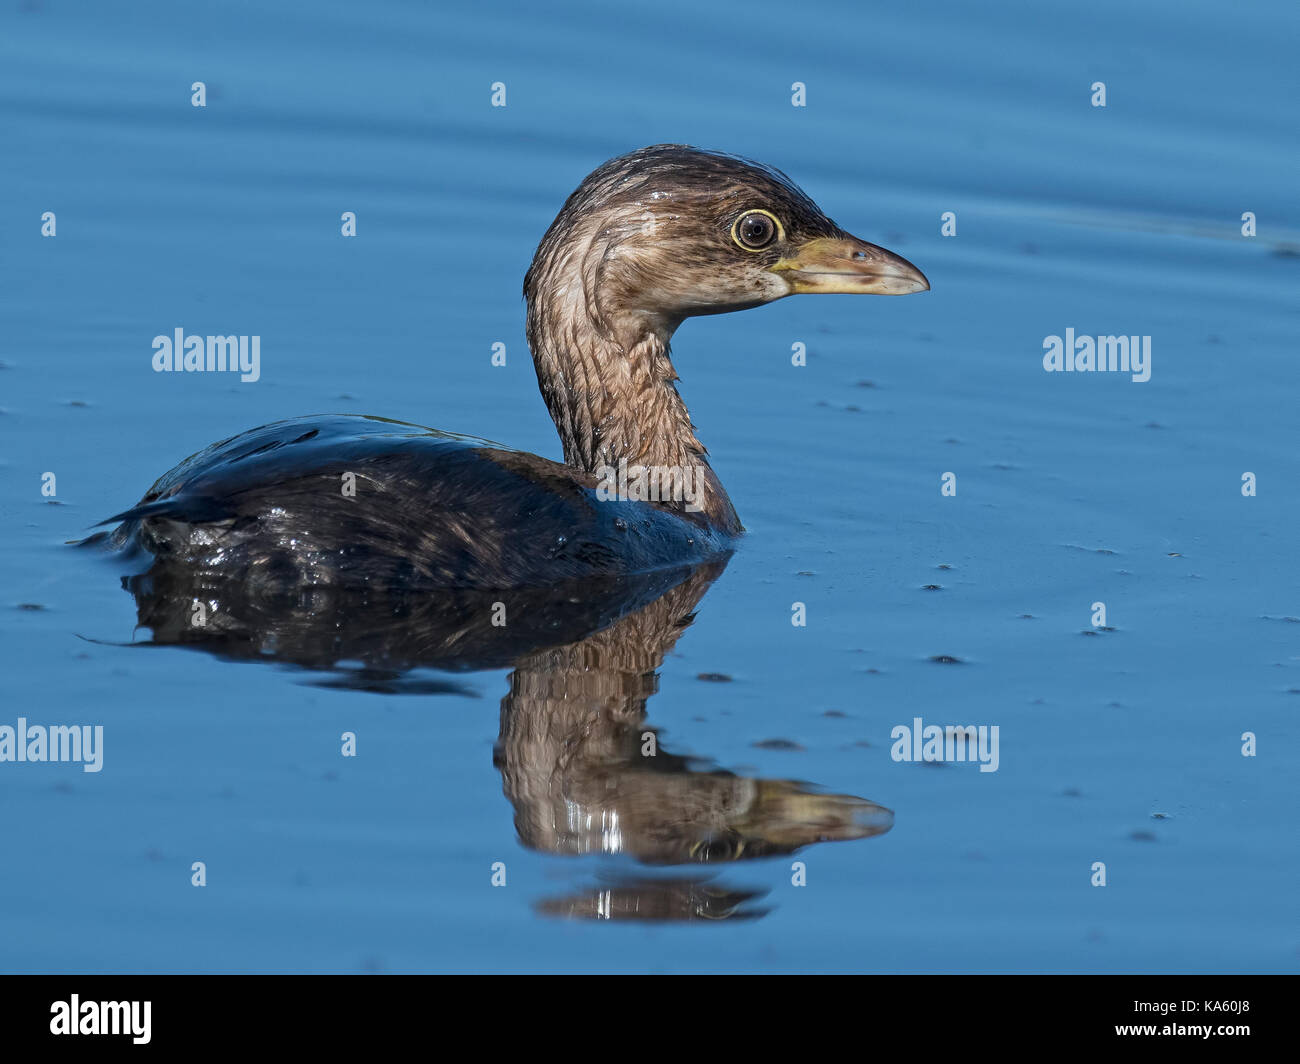 Pied-billed Grebe - Stock Image